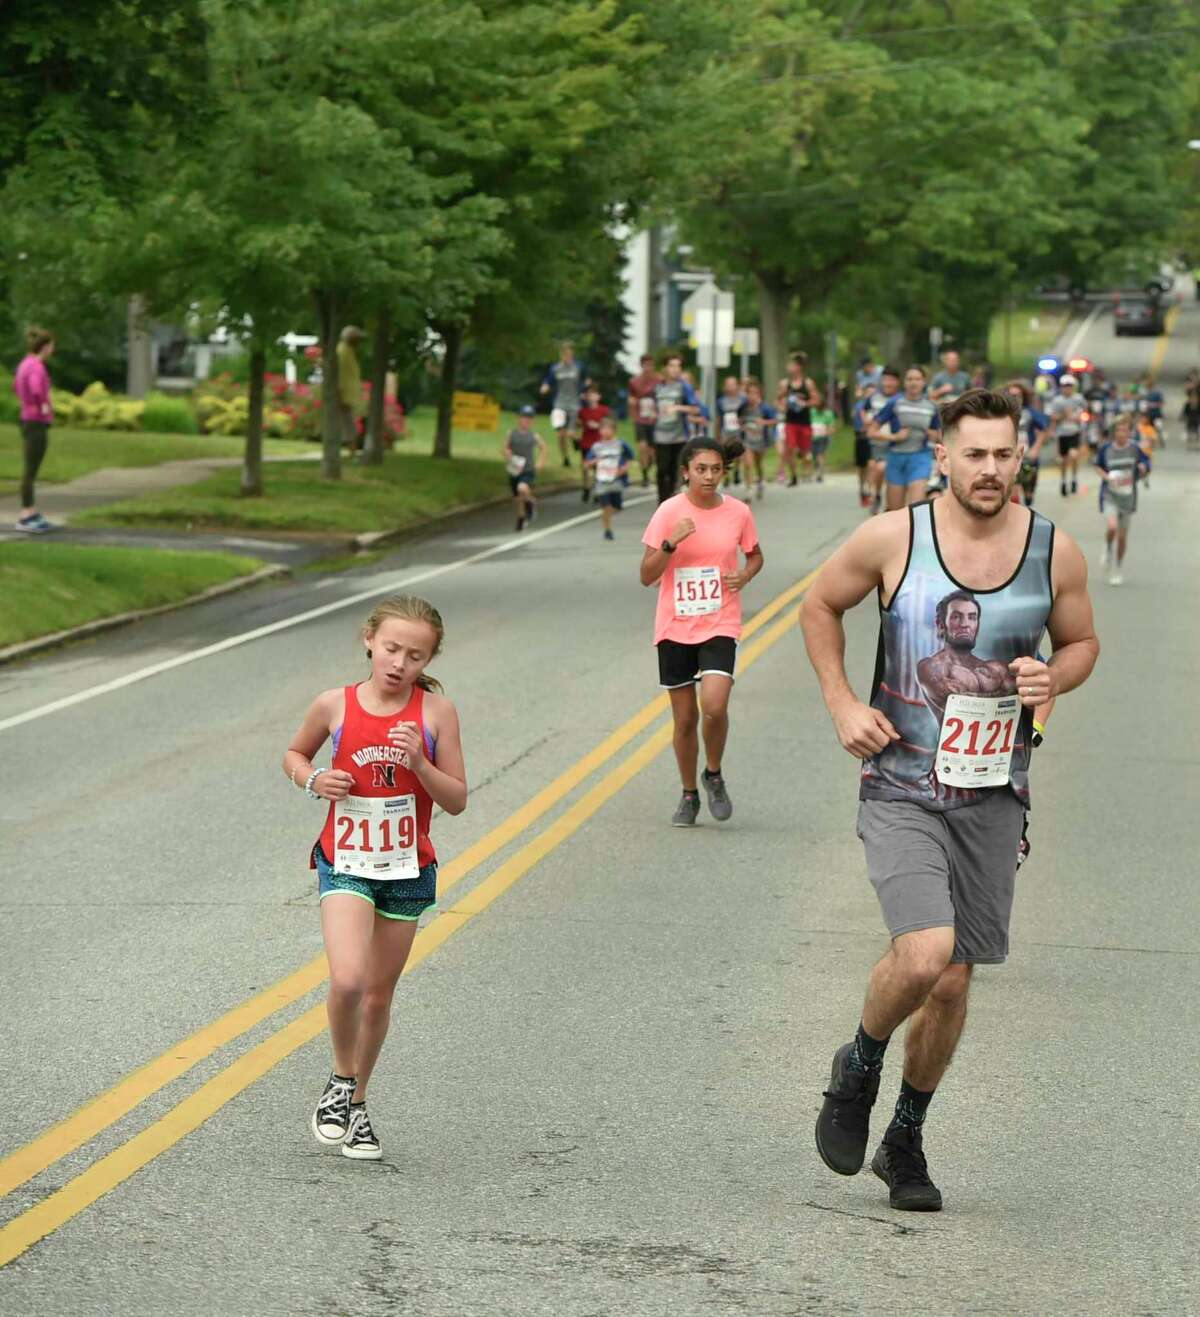 The Branford Road Race and Fun Run during the Branford Festival in 2019 in Branford.